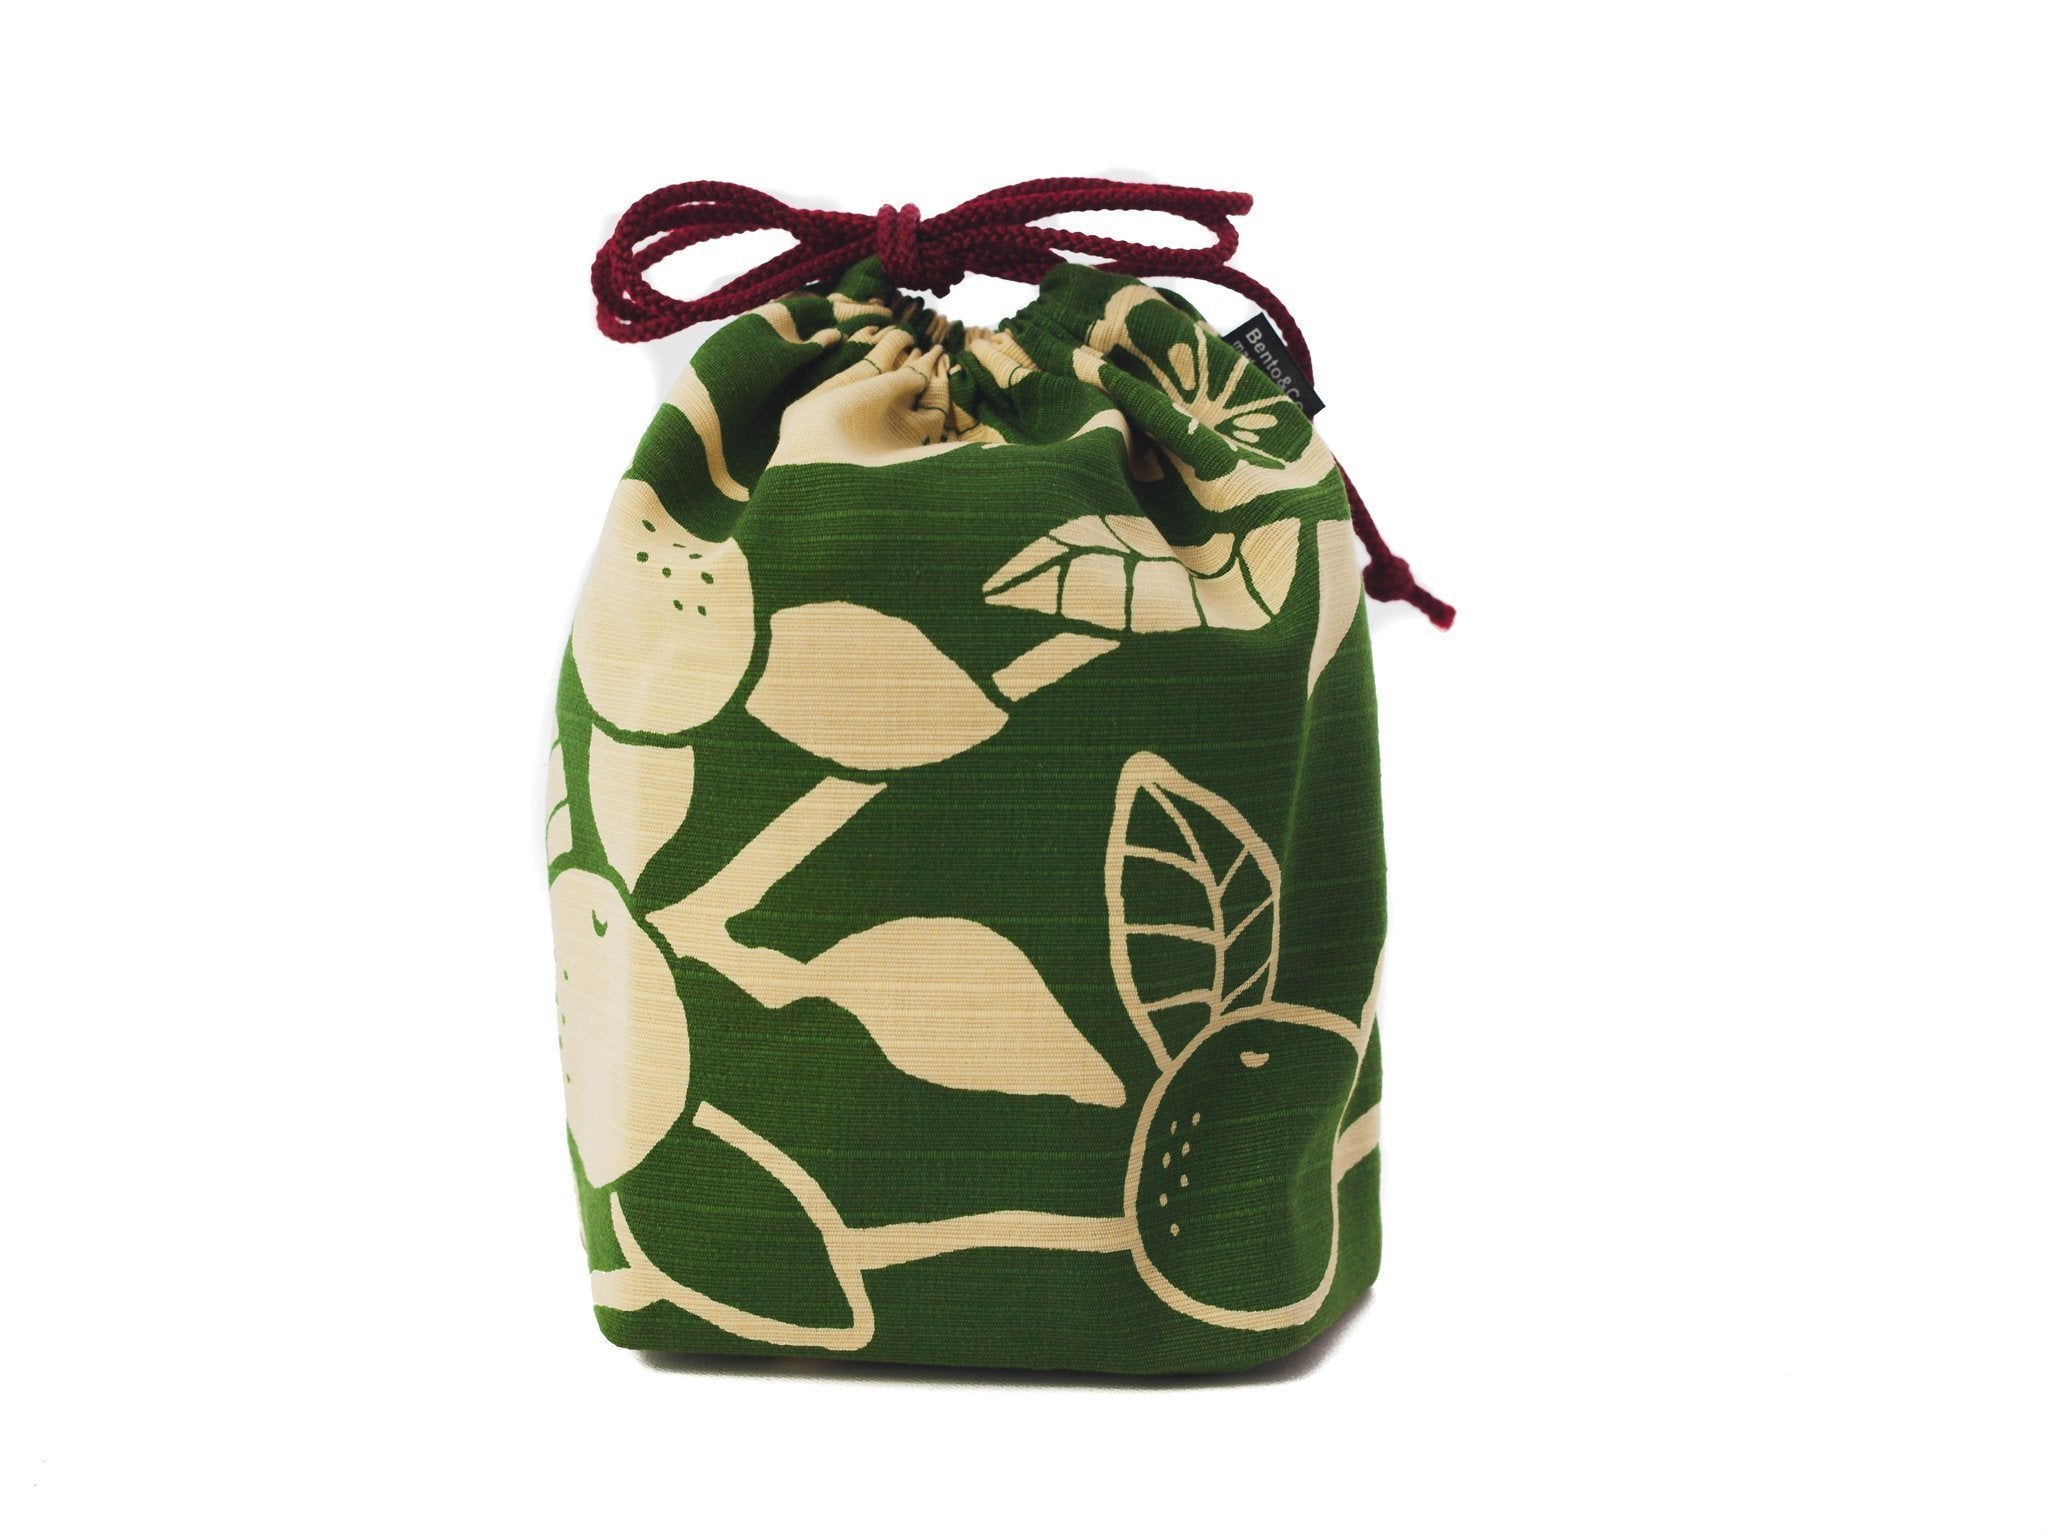 Original Furoshiki Bag | Green